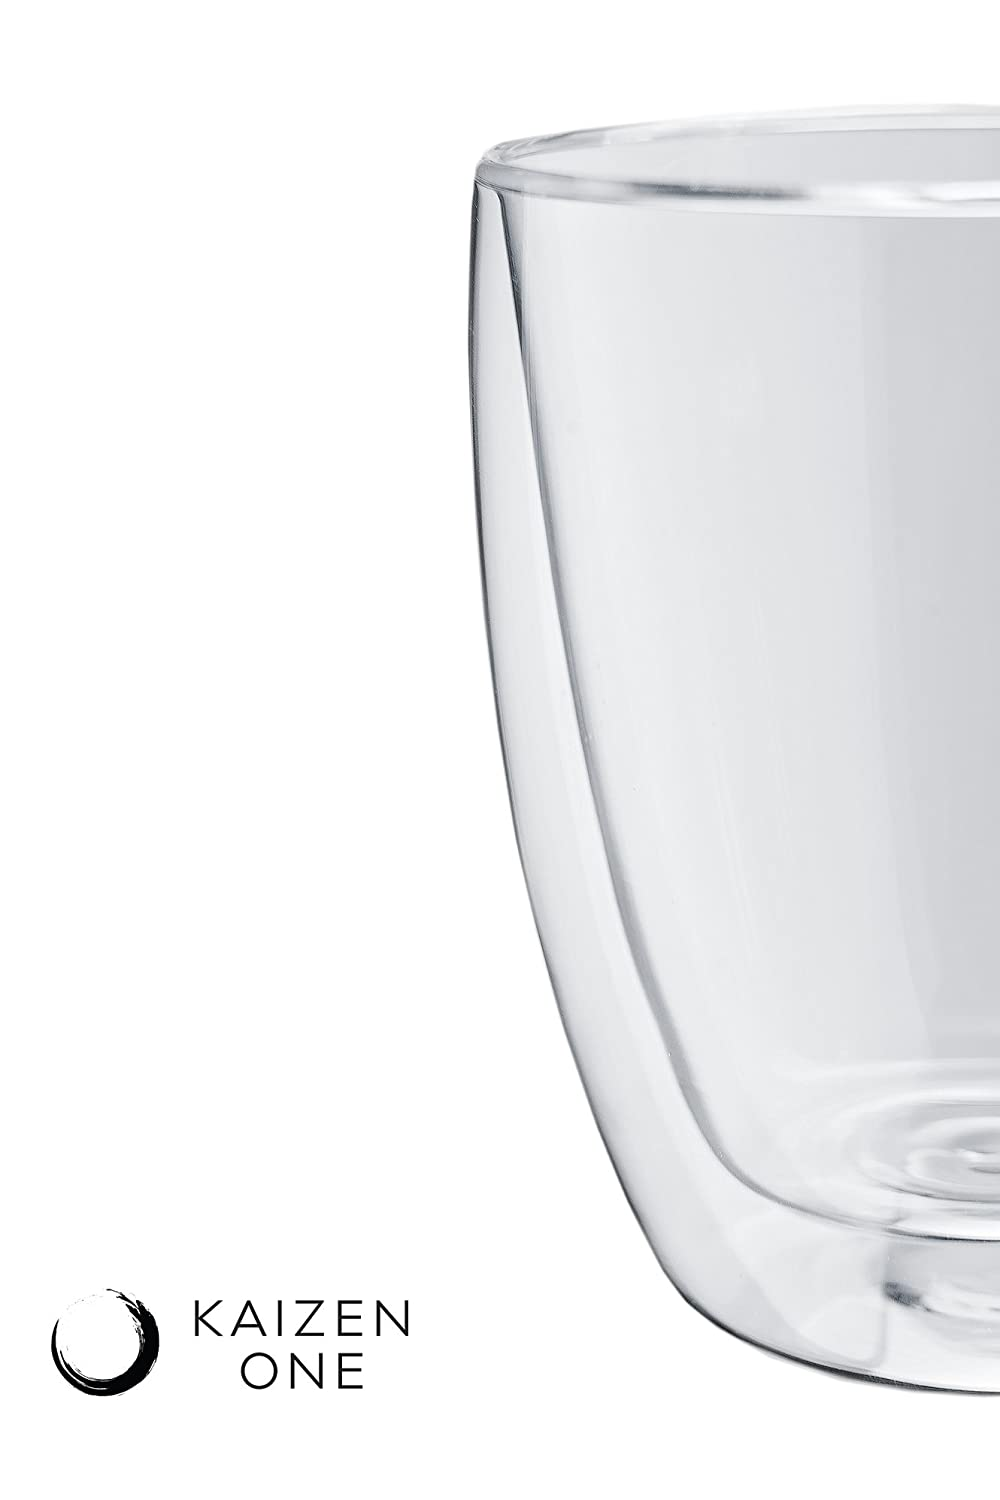 AURA Double Wall Insulated Glass Mugs by Kaizen One 12oz Set of 2